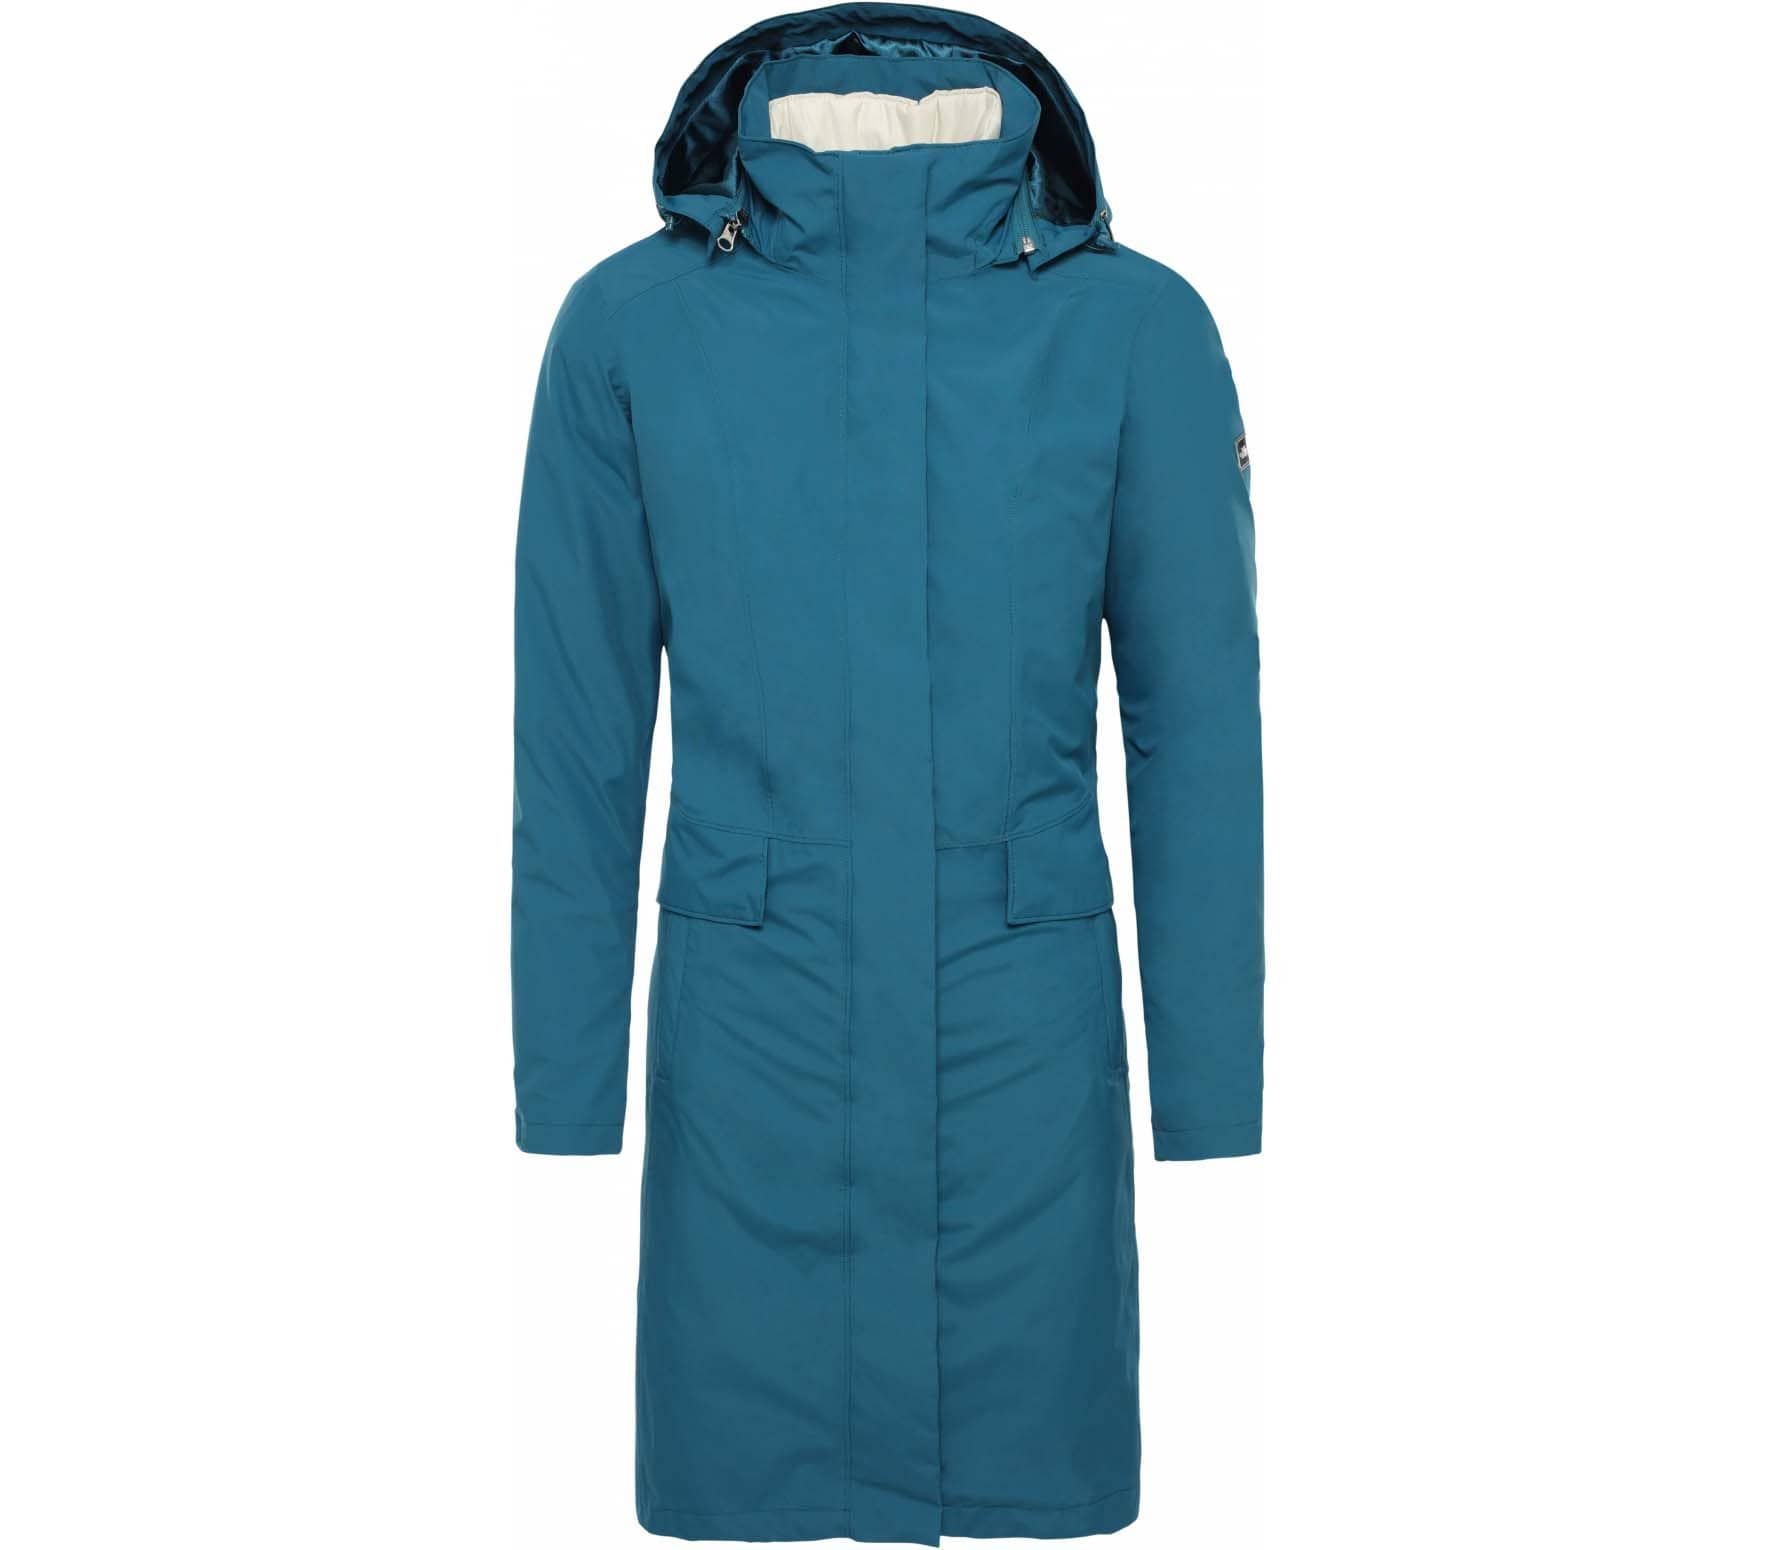 452d5890f The North Face SUZANNE TRICLIMATE Women Coat blue